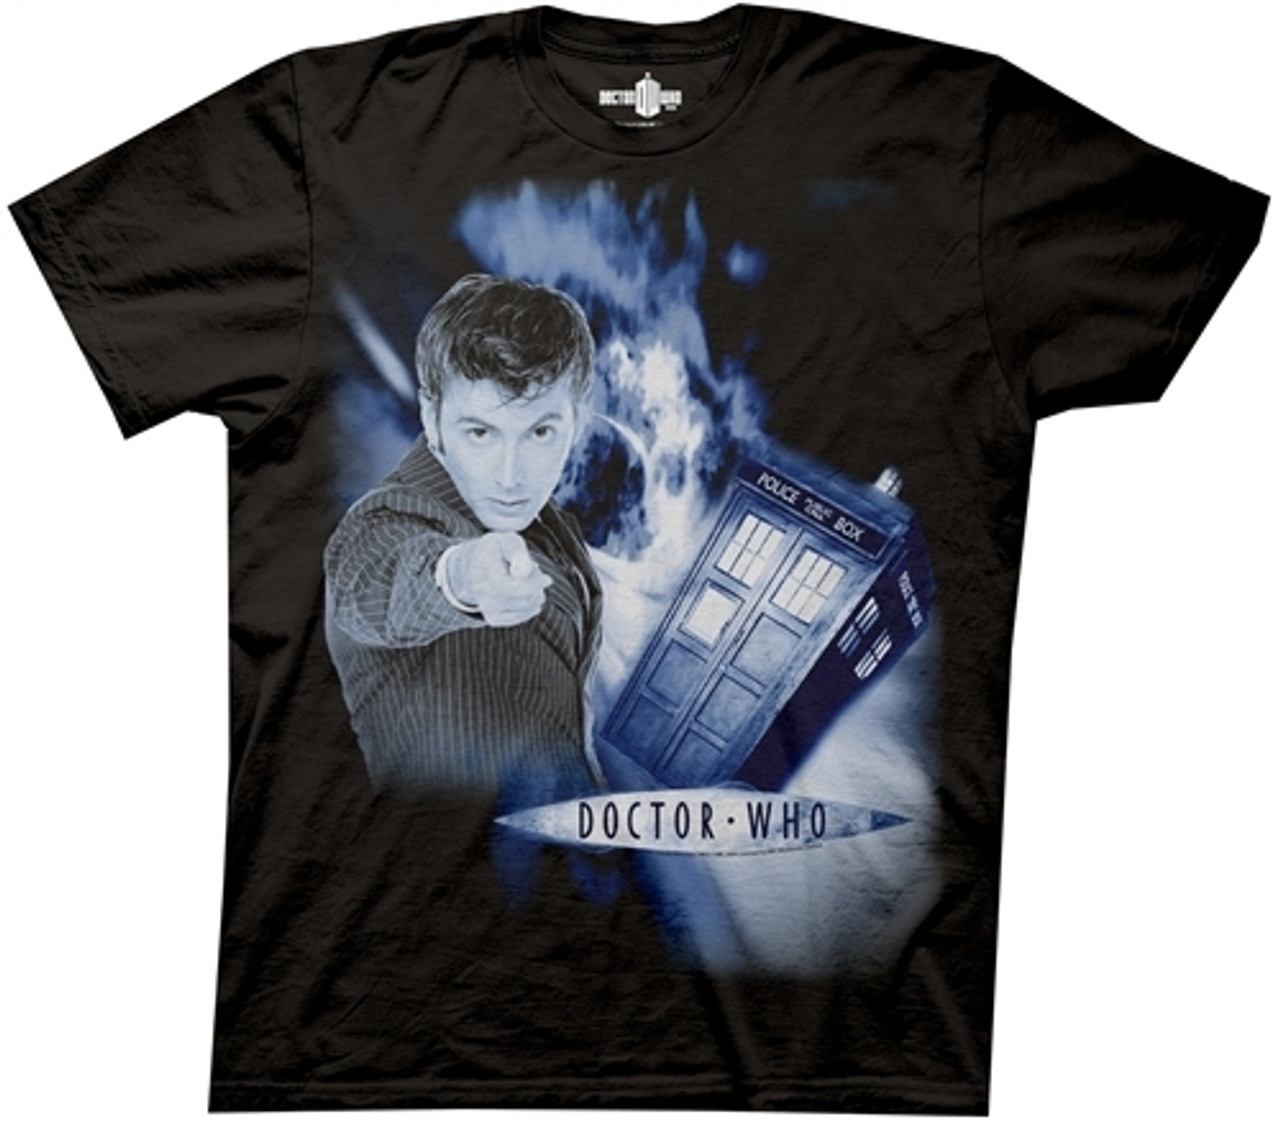 YOUTH L 14-16 David Tennant Hoodie The 10th Doctor Black